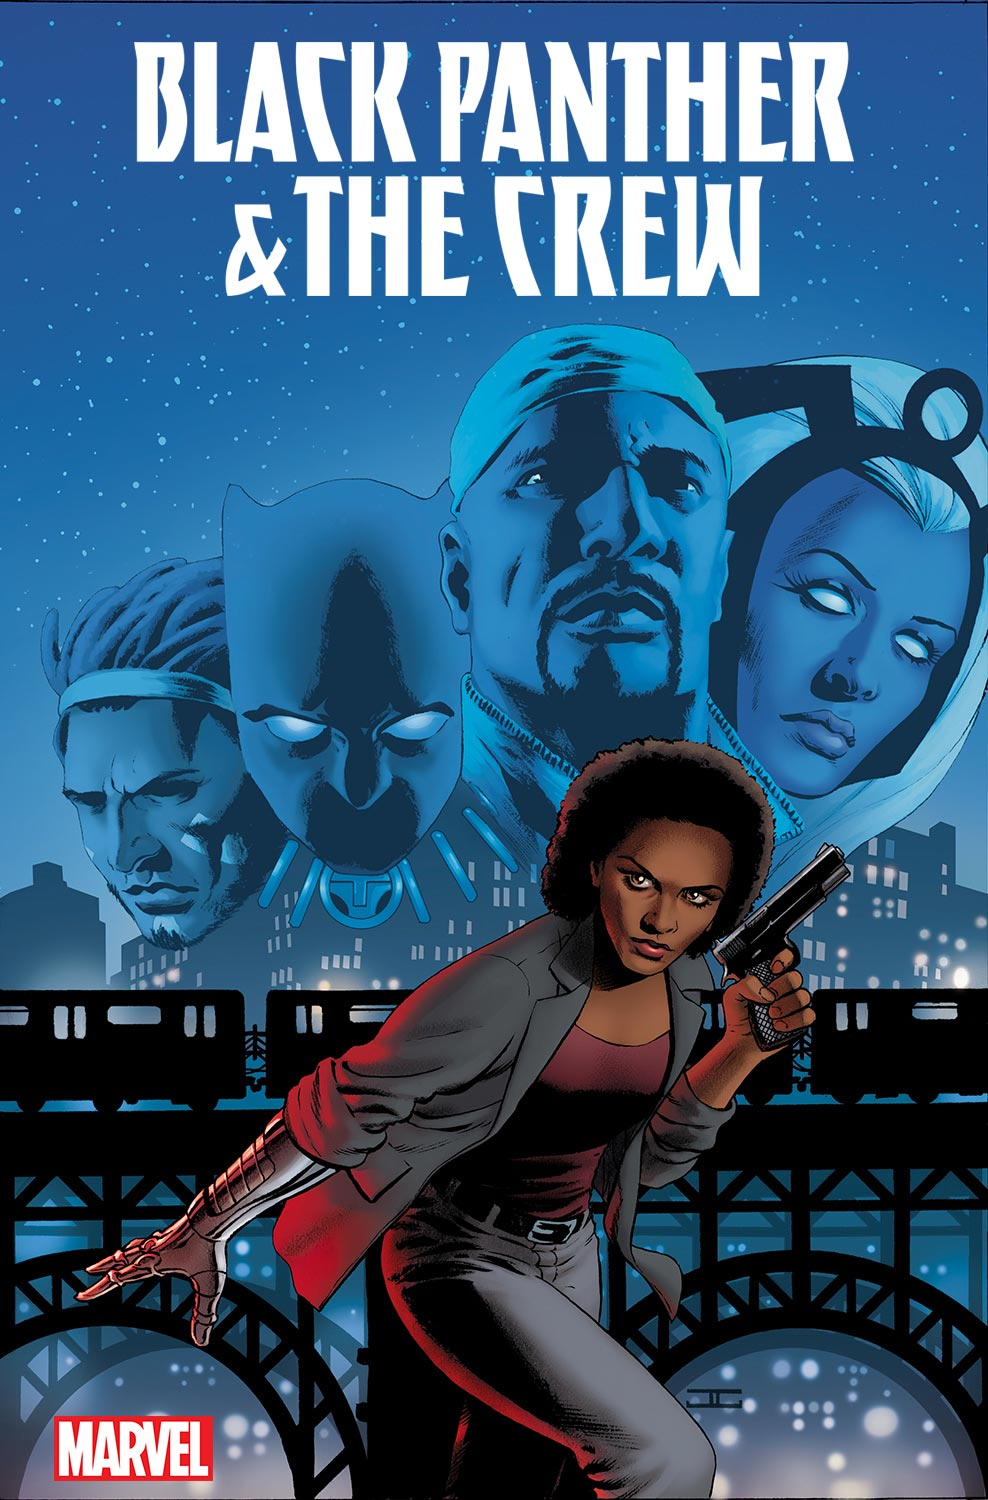 Marvel Comics Announces BLACK PANTHER & THE CREW